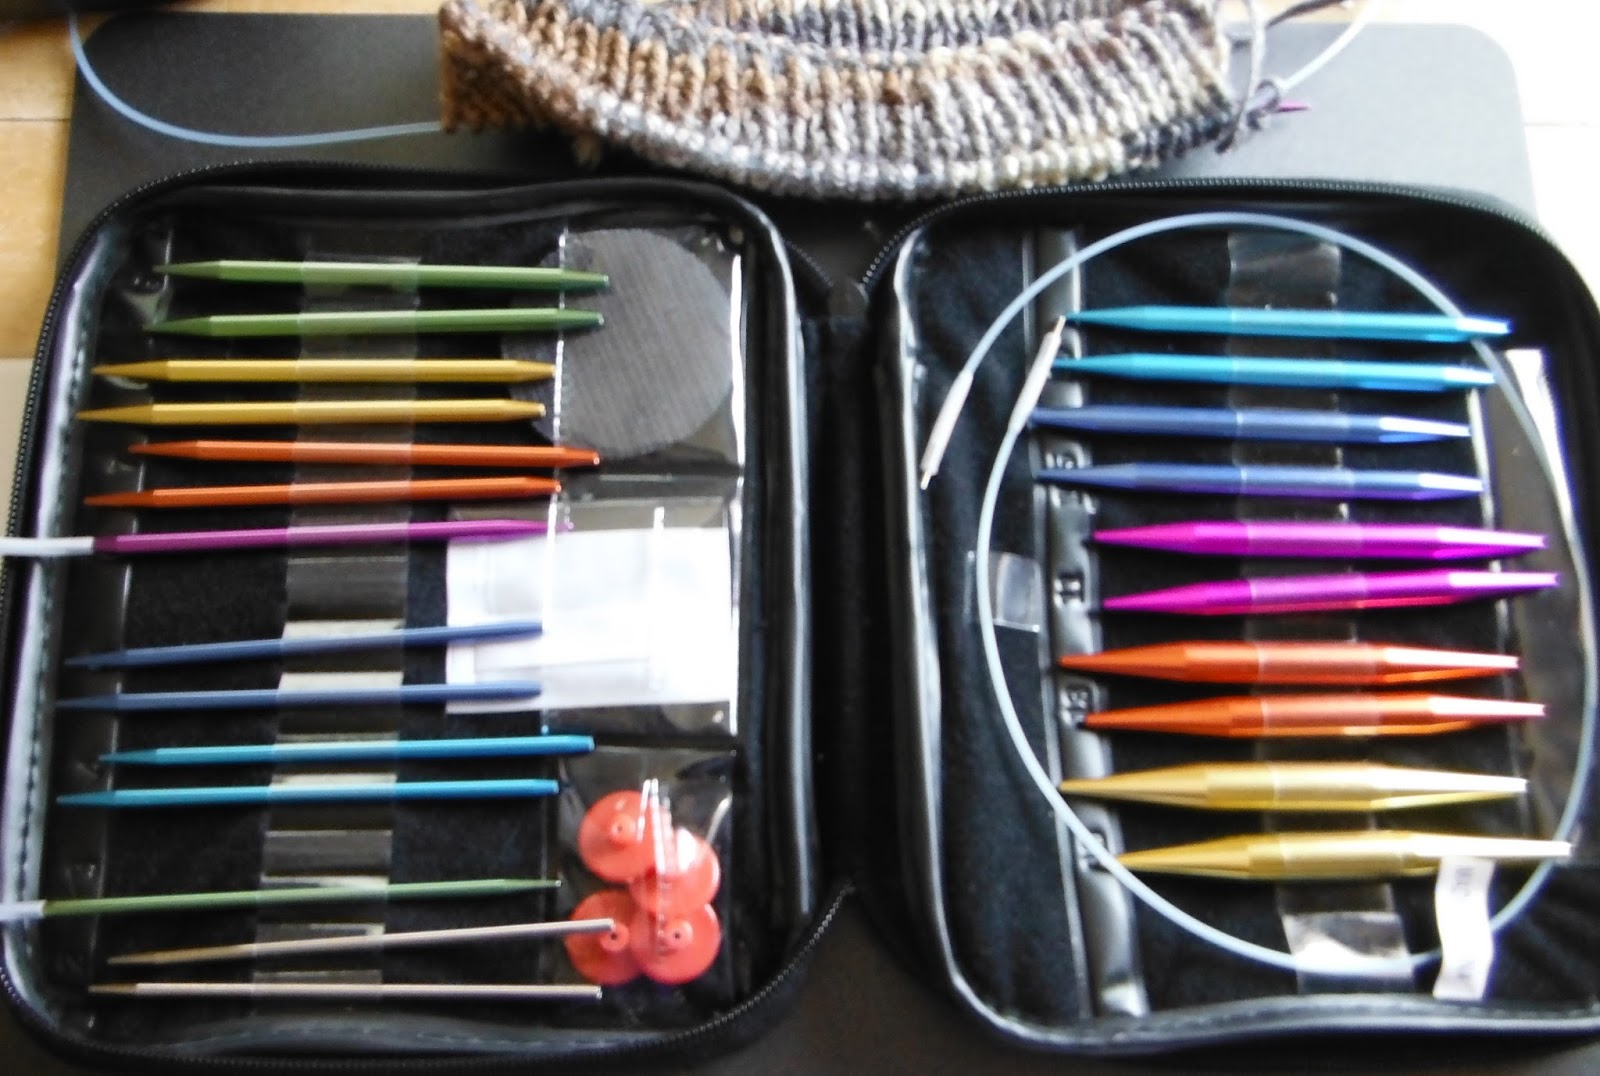 Knitting Needle Sets Circular Interchangeable Reviews : Related keywords suggestions for interchangeable